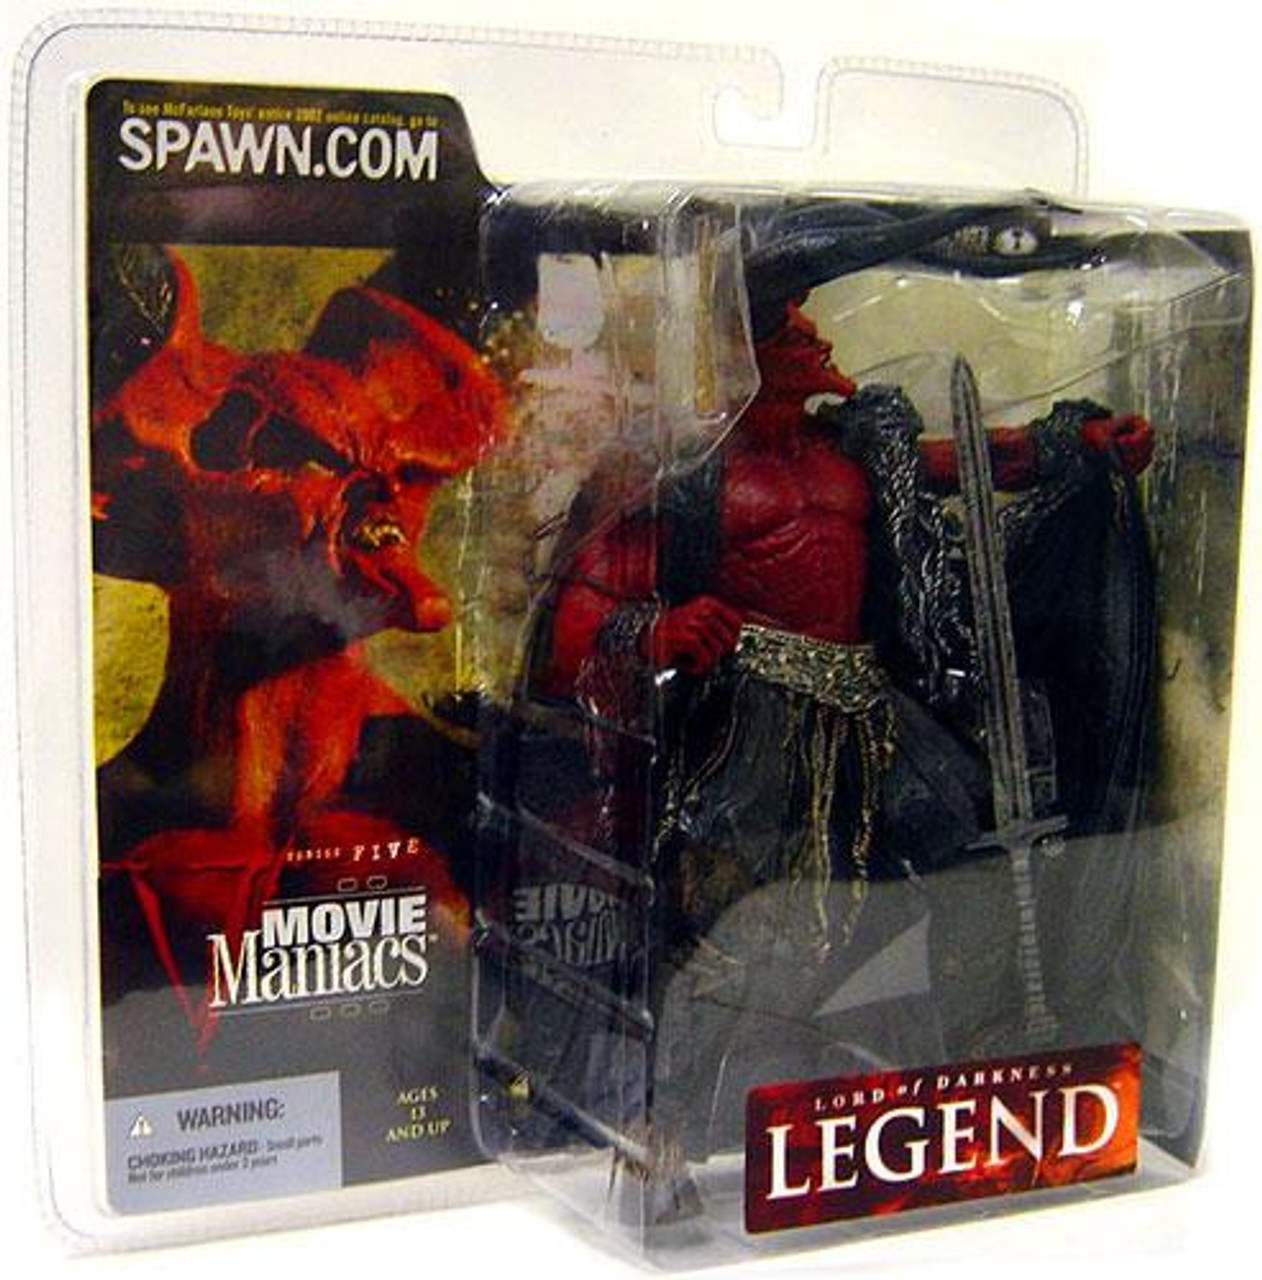 McFarlane Toys Legend Movie Maniacs Series 5 Lord of Darkness Action Figure [Damaged Package, Mint Contents!]